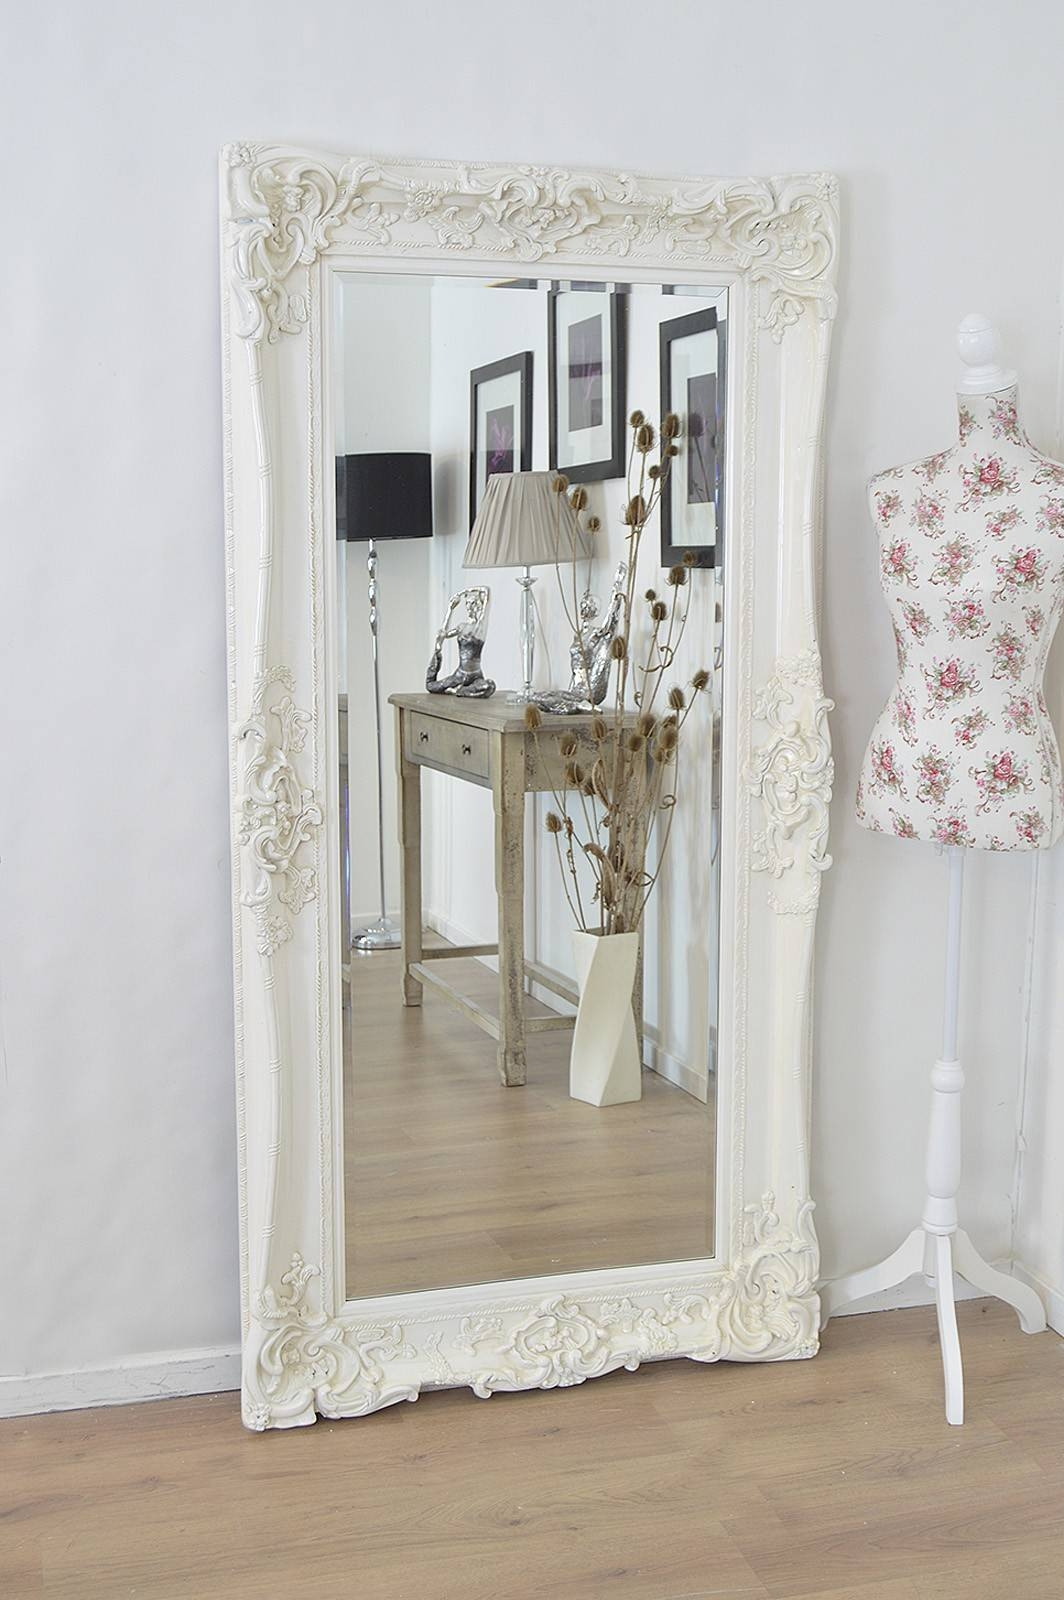 Shabby Chic Wall Mirror 40 Nice Decorating With Vintage Shabby throughout Vintage Shabby Chic Mirrors (Image 21 of 25)